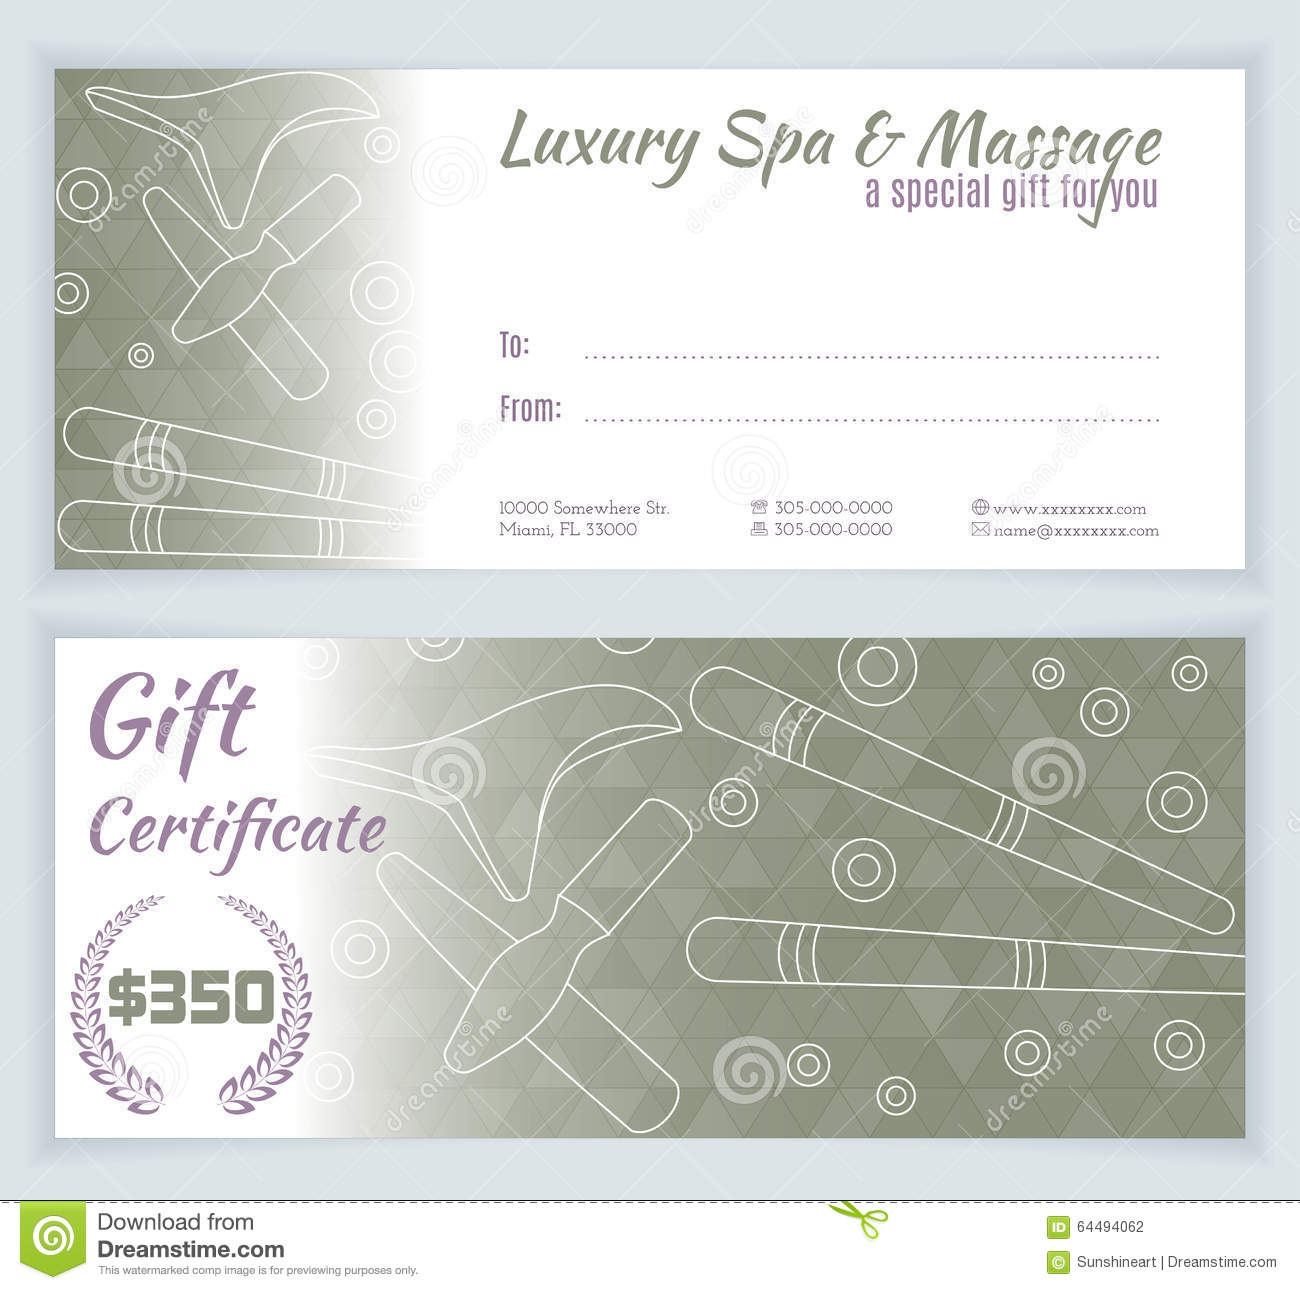 Salon gift certificate template free download gallery templates hair salon gift certificate template free gallery templates hair salon gift certificate template free image collections 1betcityfo Image collections